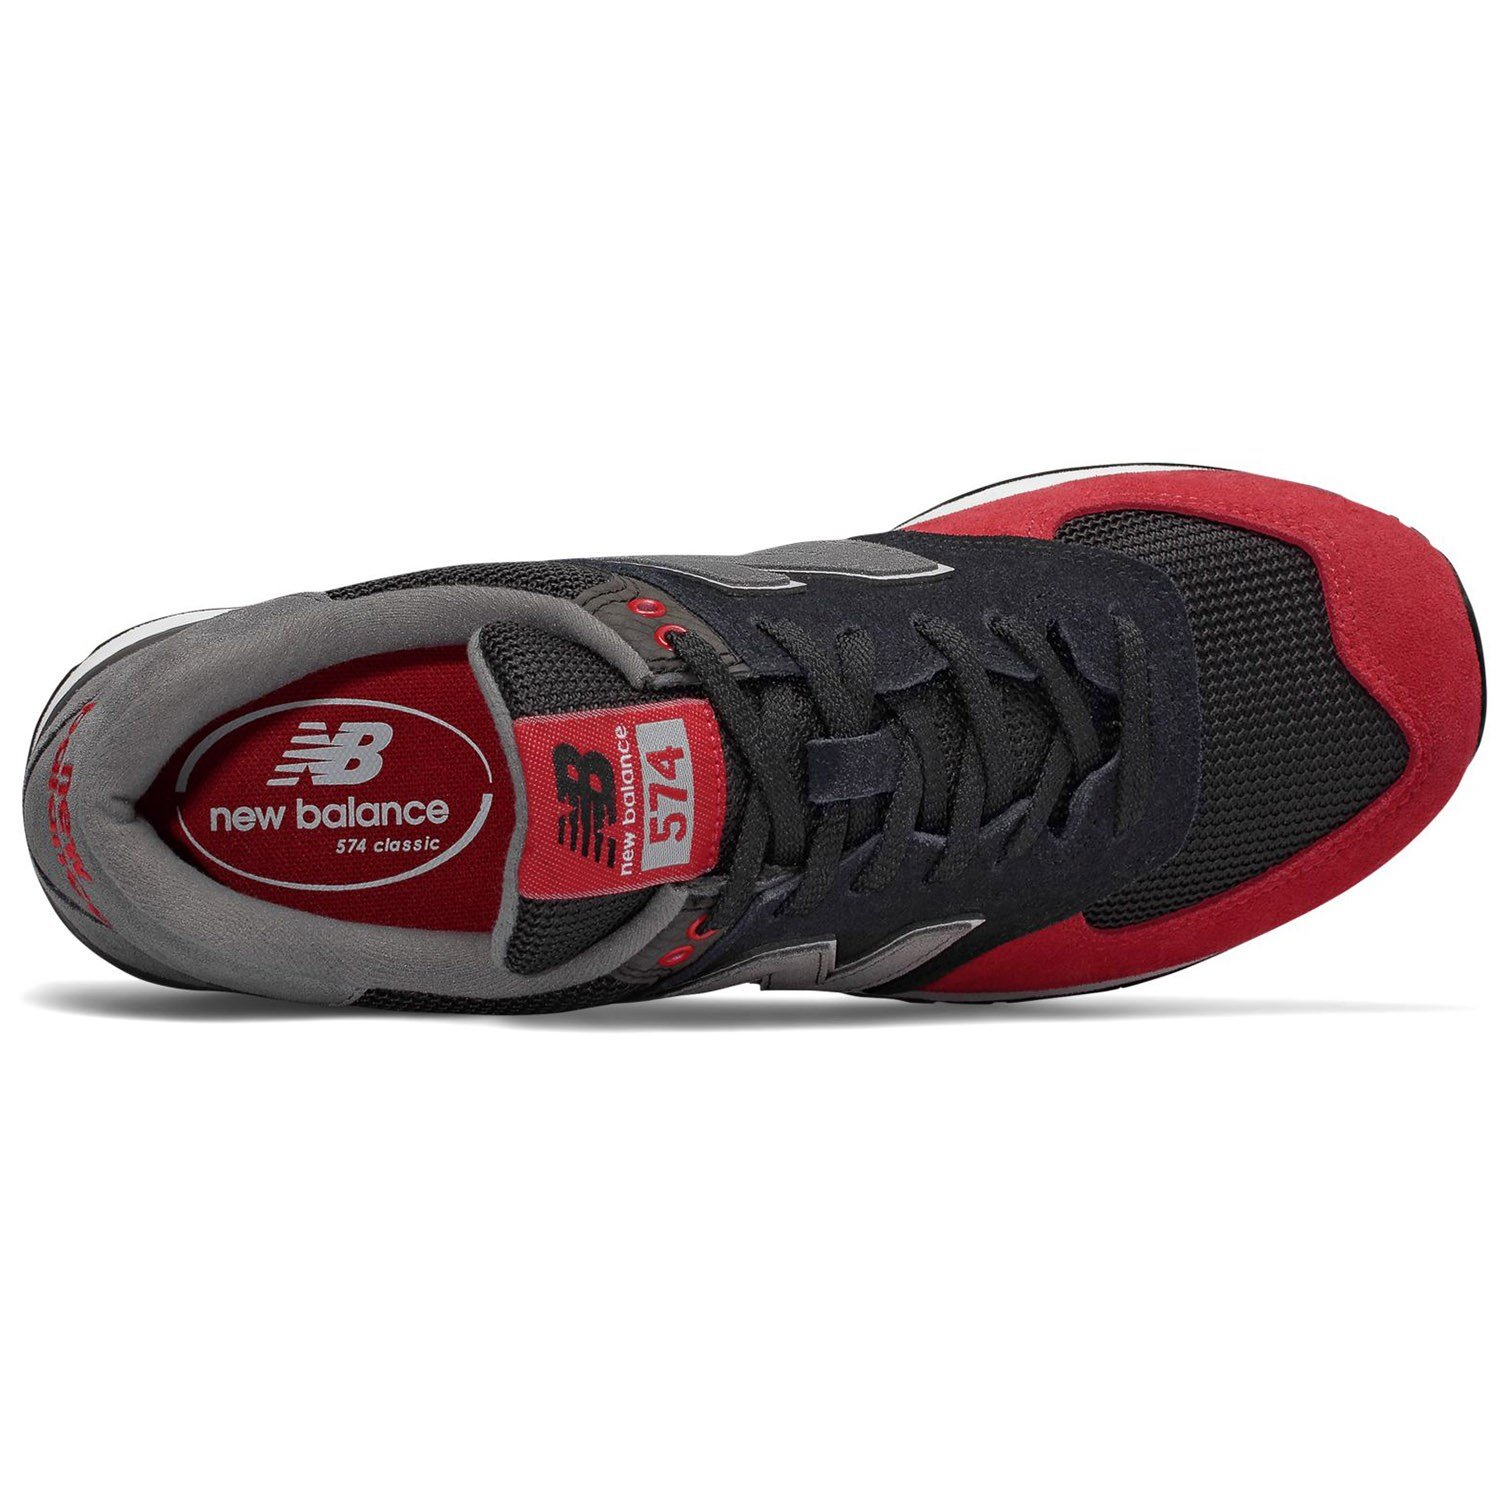 separation shoes f4852 a589e New Balance 574 Serpent Luxe Shoes | evo